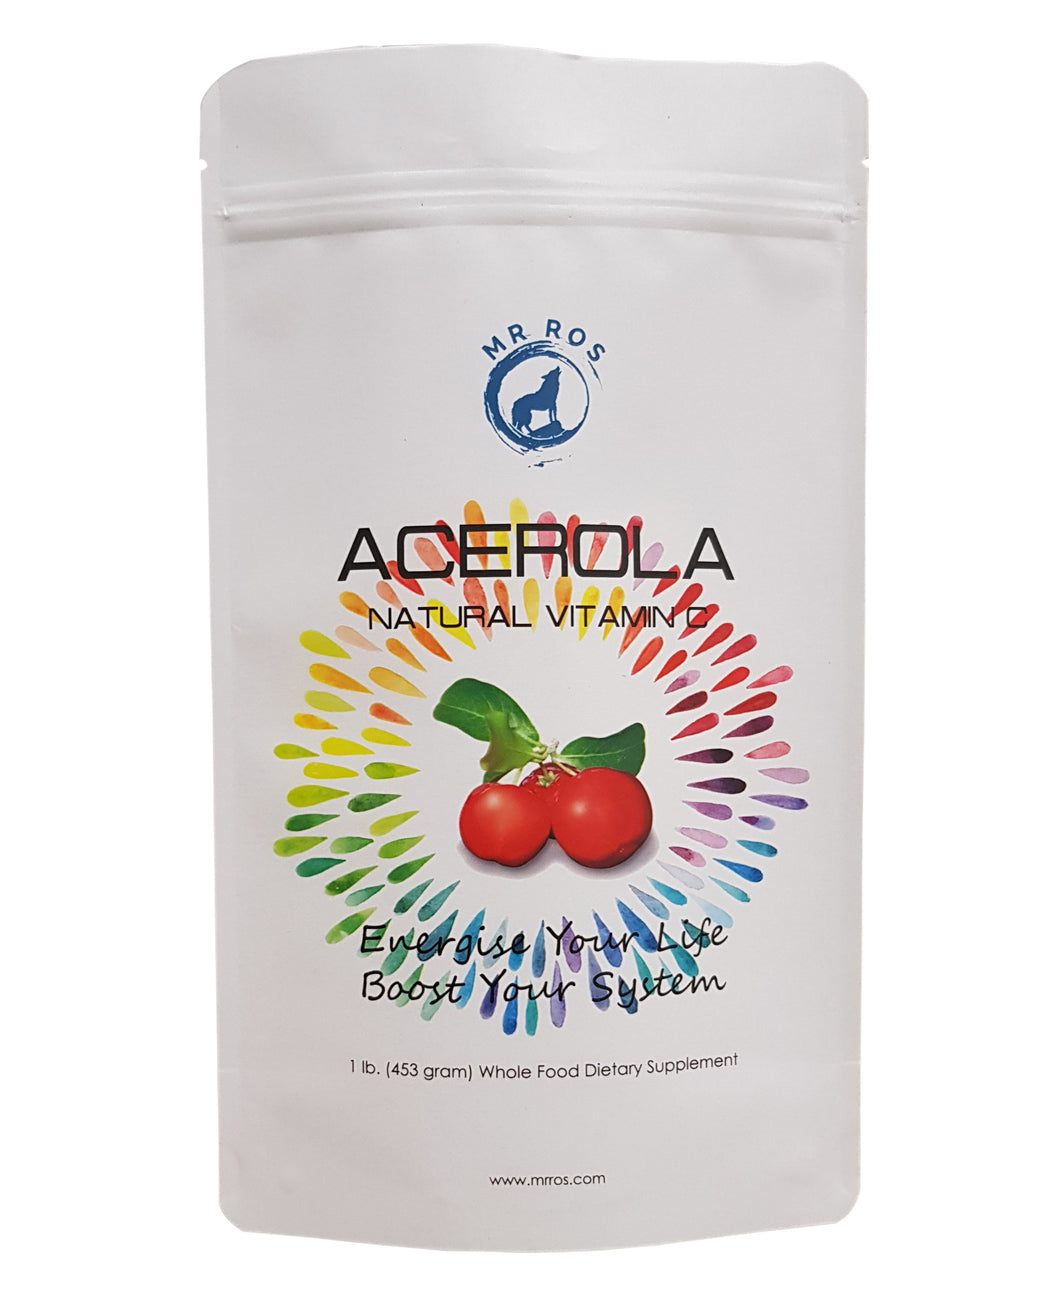 Acerola Natural Vitamin C Powder 1lb - Mr Ros Natural Premium Superfoods